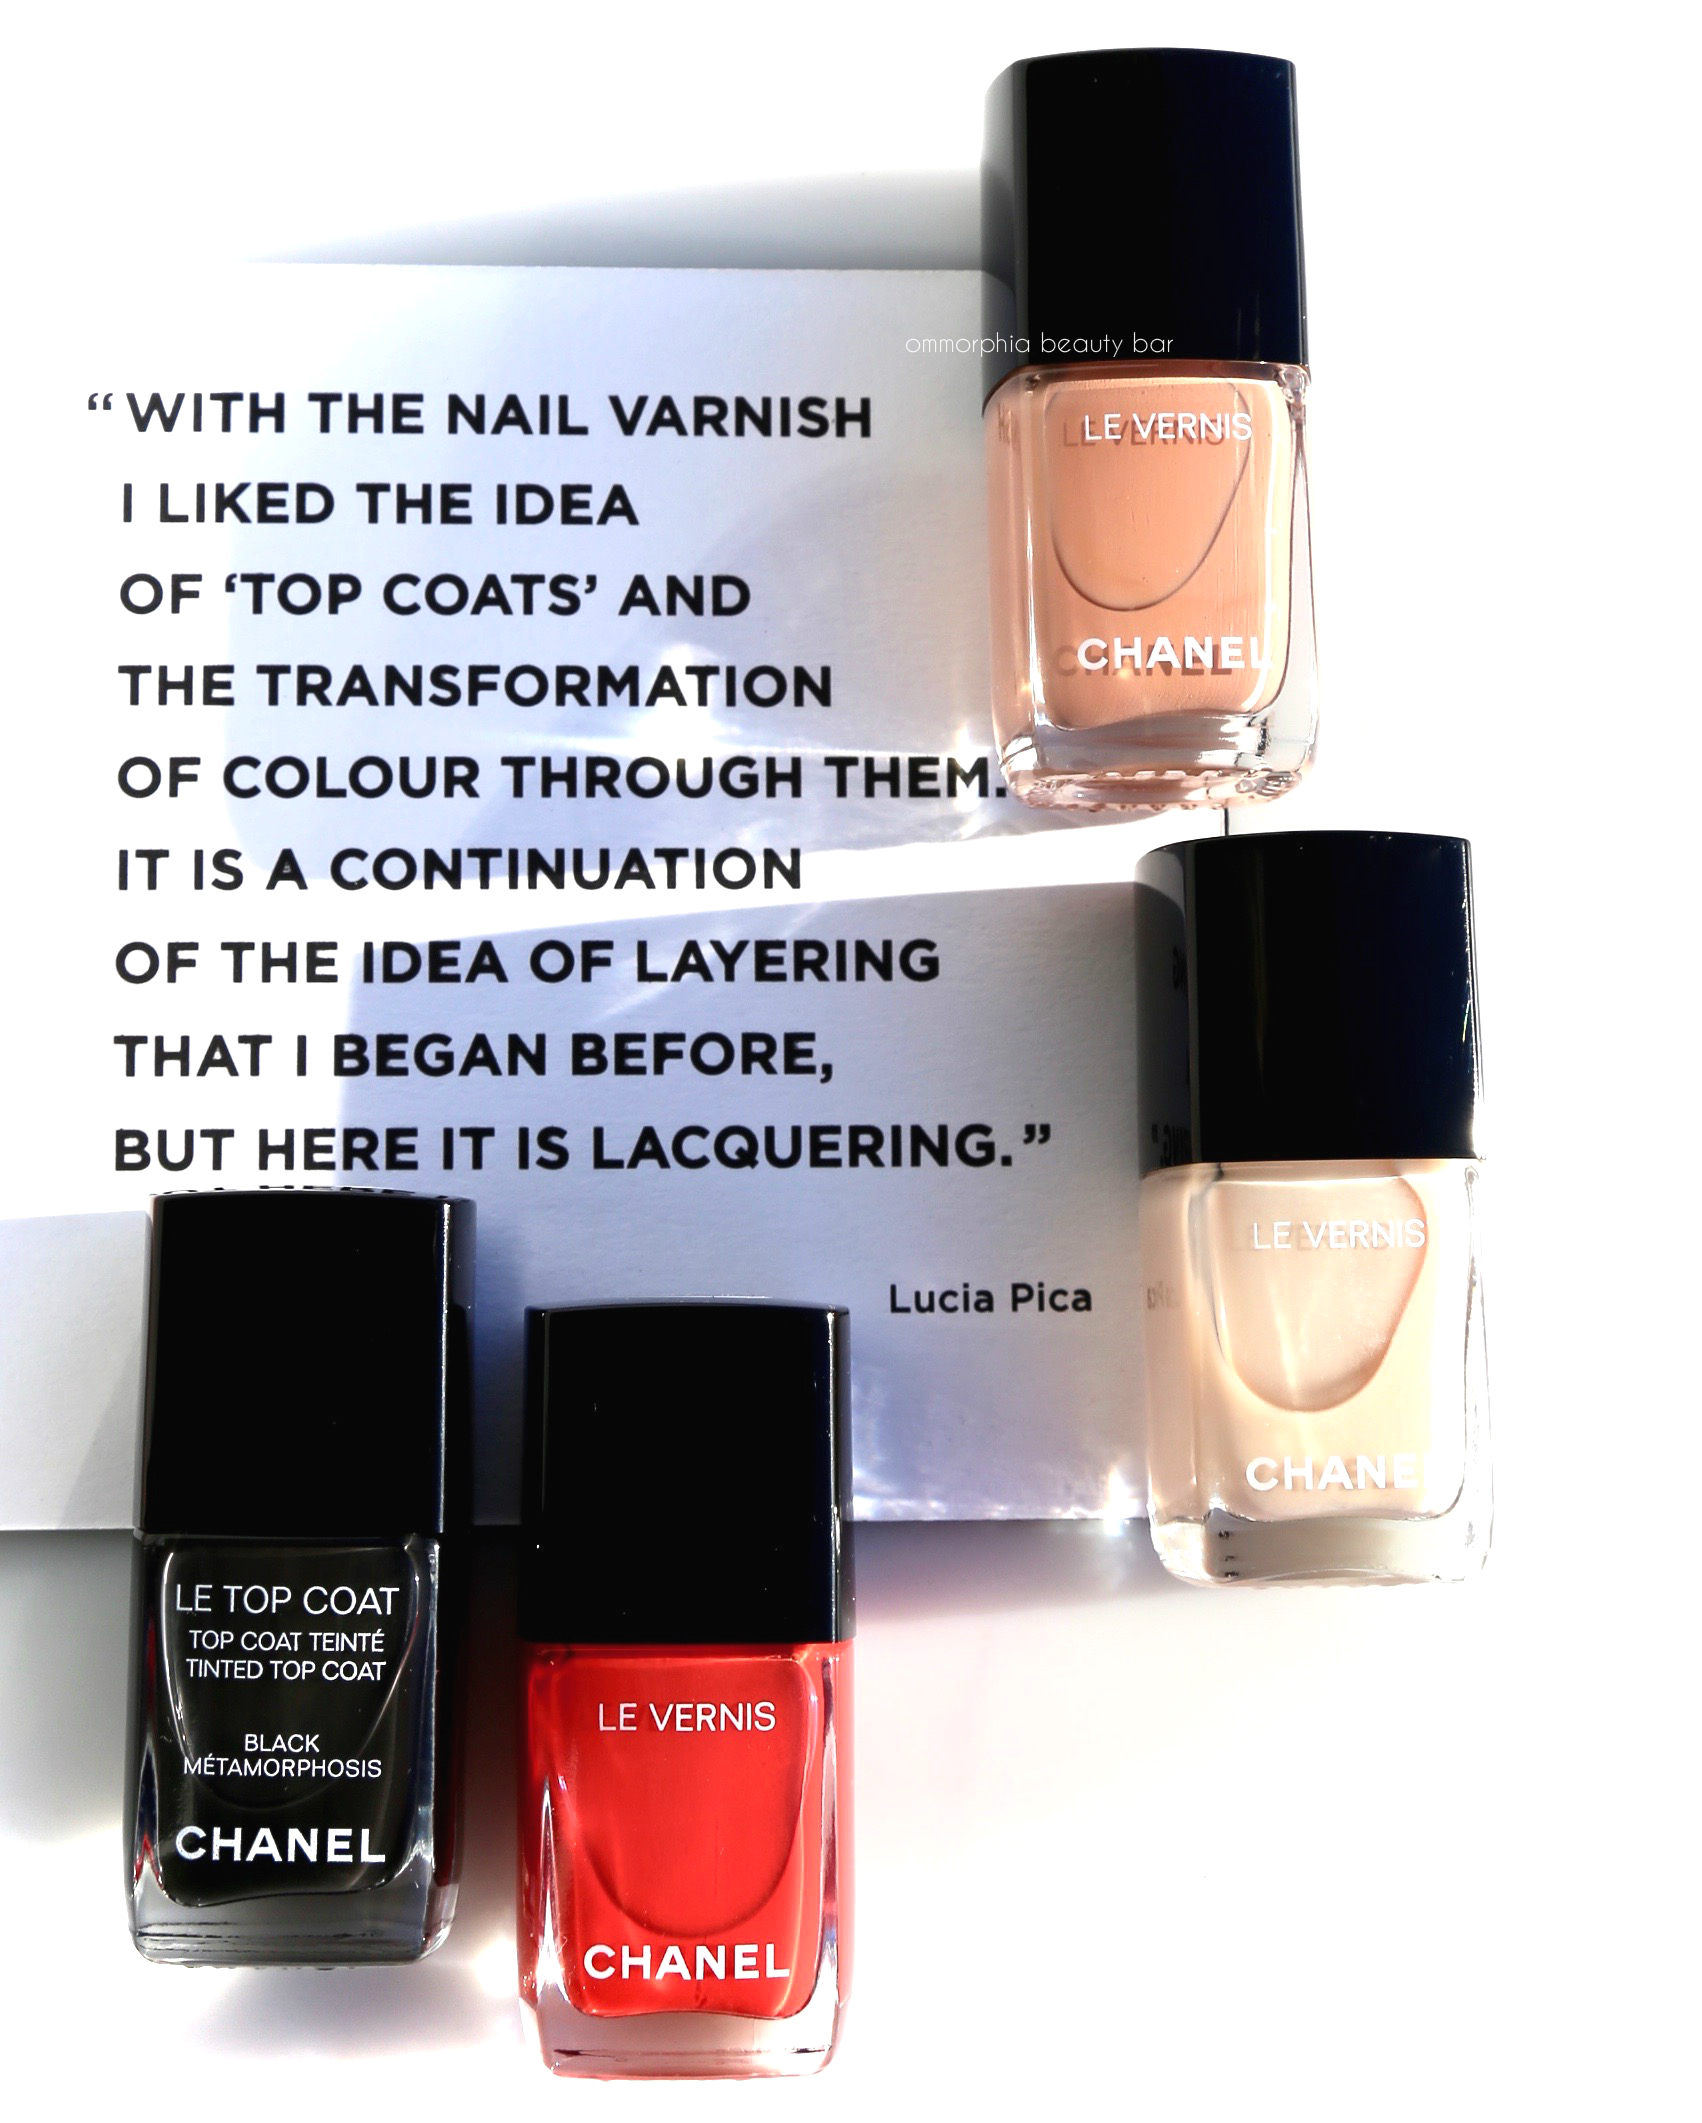 CHANEL SS/17 · Le Vernis Coco Codes Collection